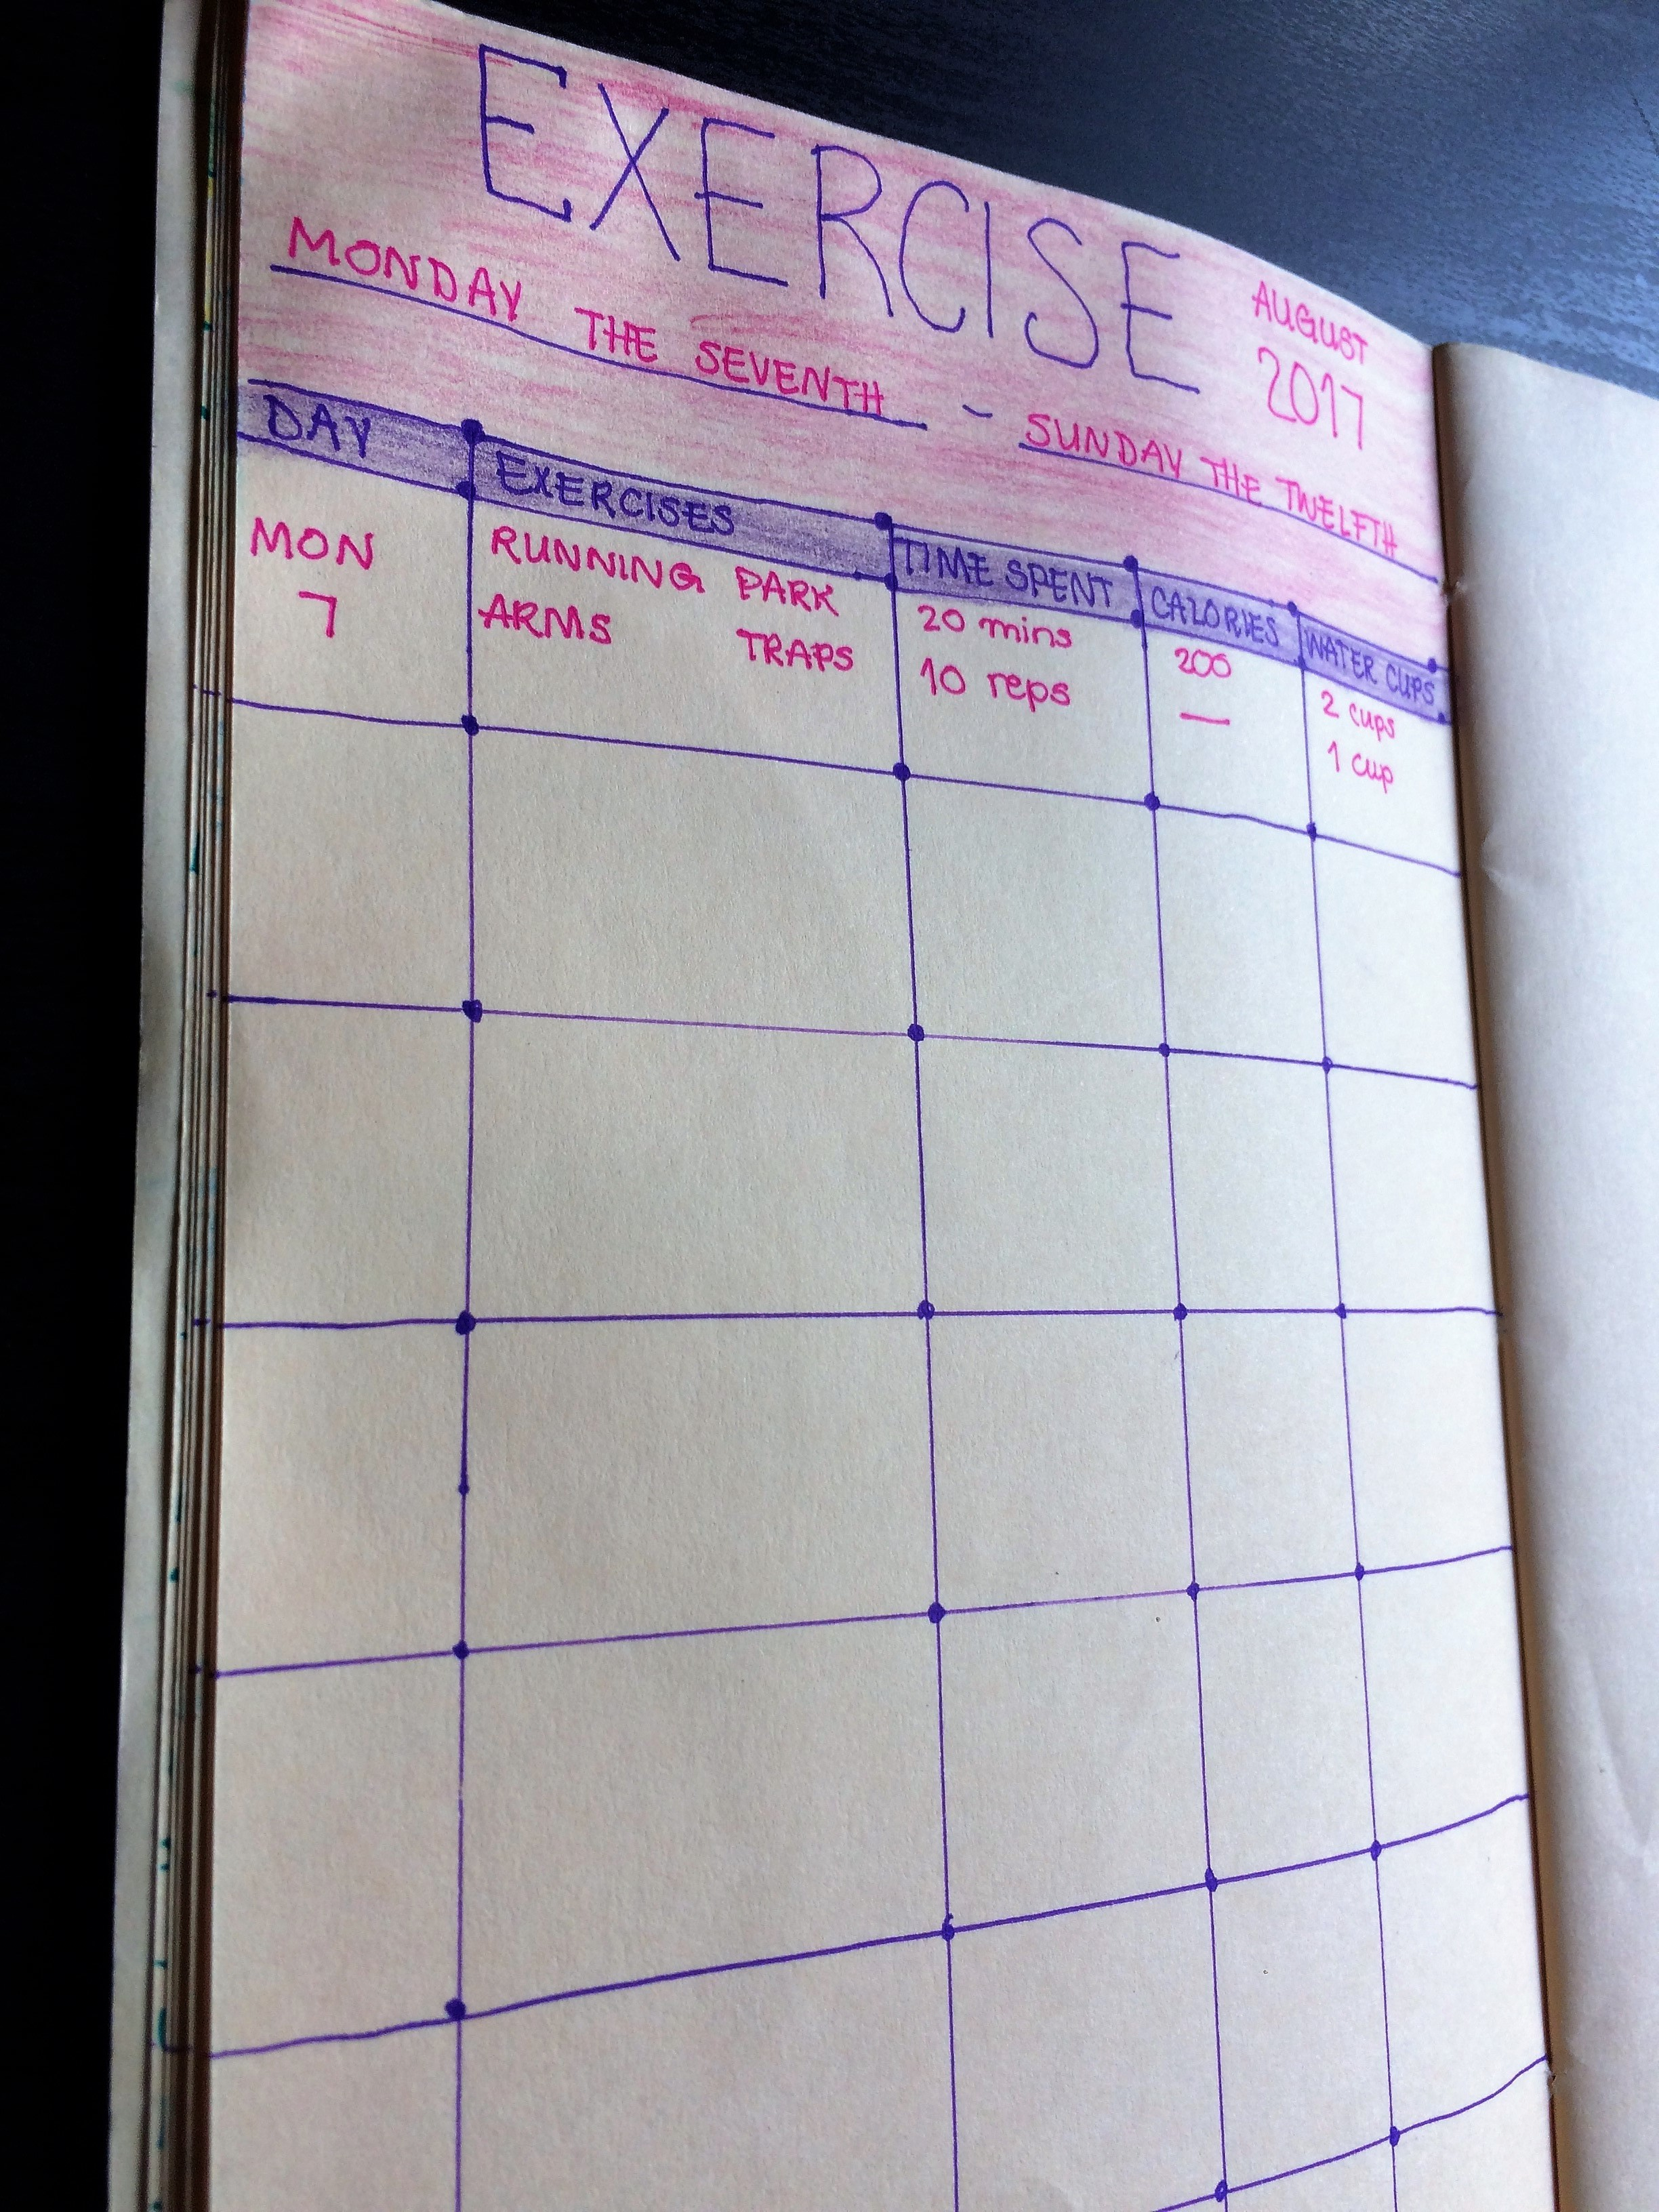 bullet journal health pages health and fitness tracker ideas food log inspiration goals doodles layout spread my life track how to start a diy pages 4